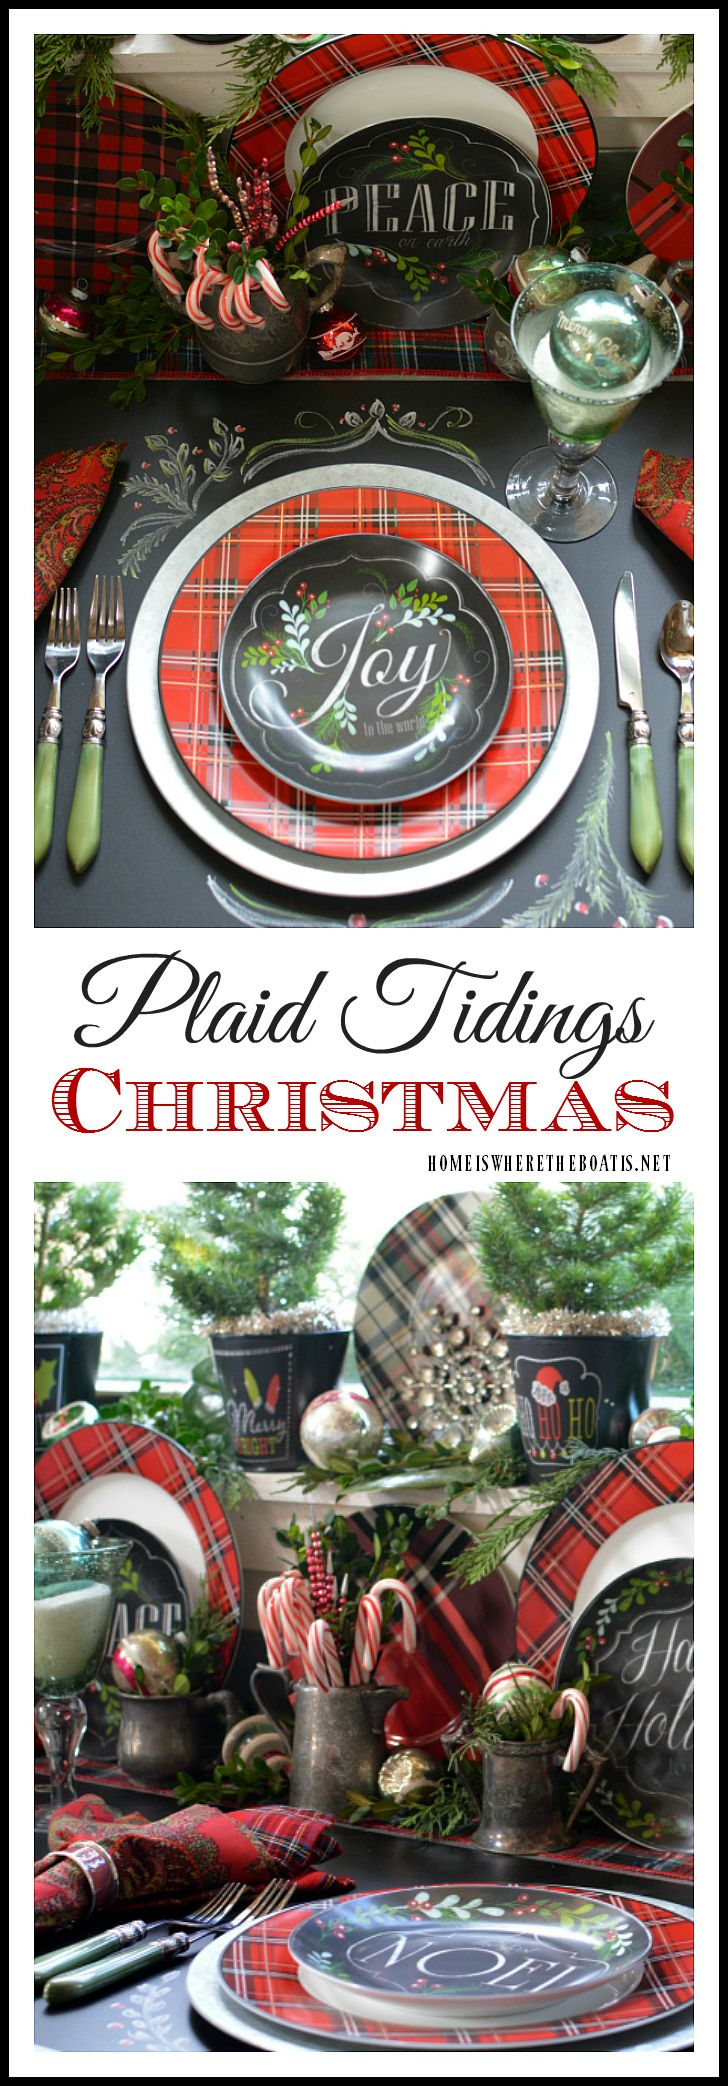 Plaid Tidings Christmas Table with fresh greenery and vintage ornaments | homeiswheretheboatis.net #tartan #pottingshed